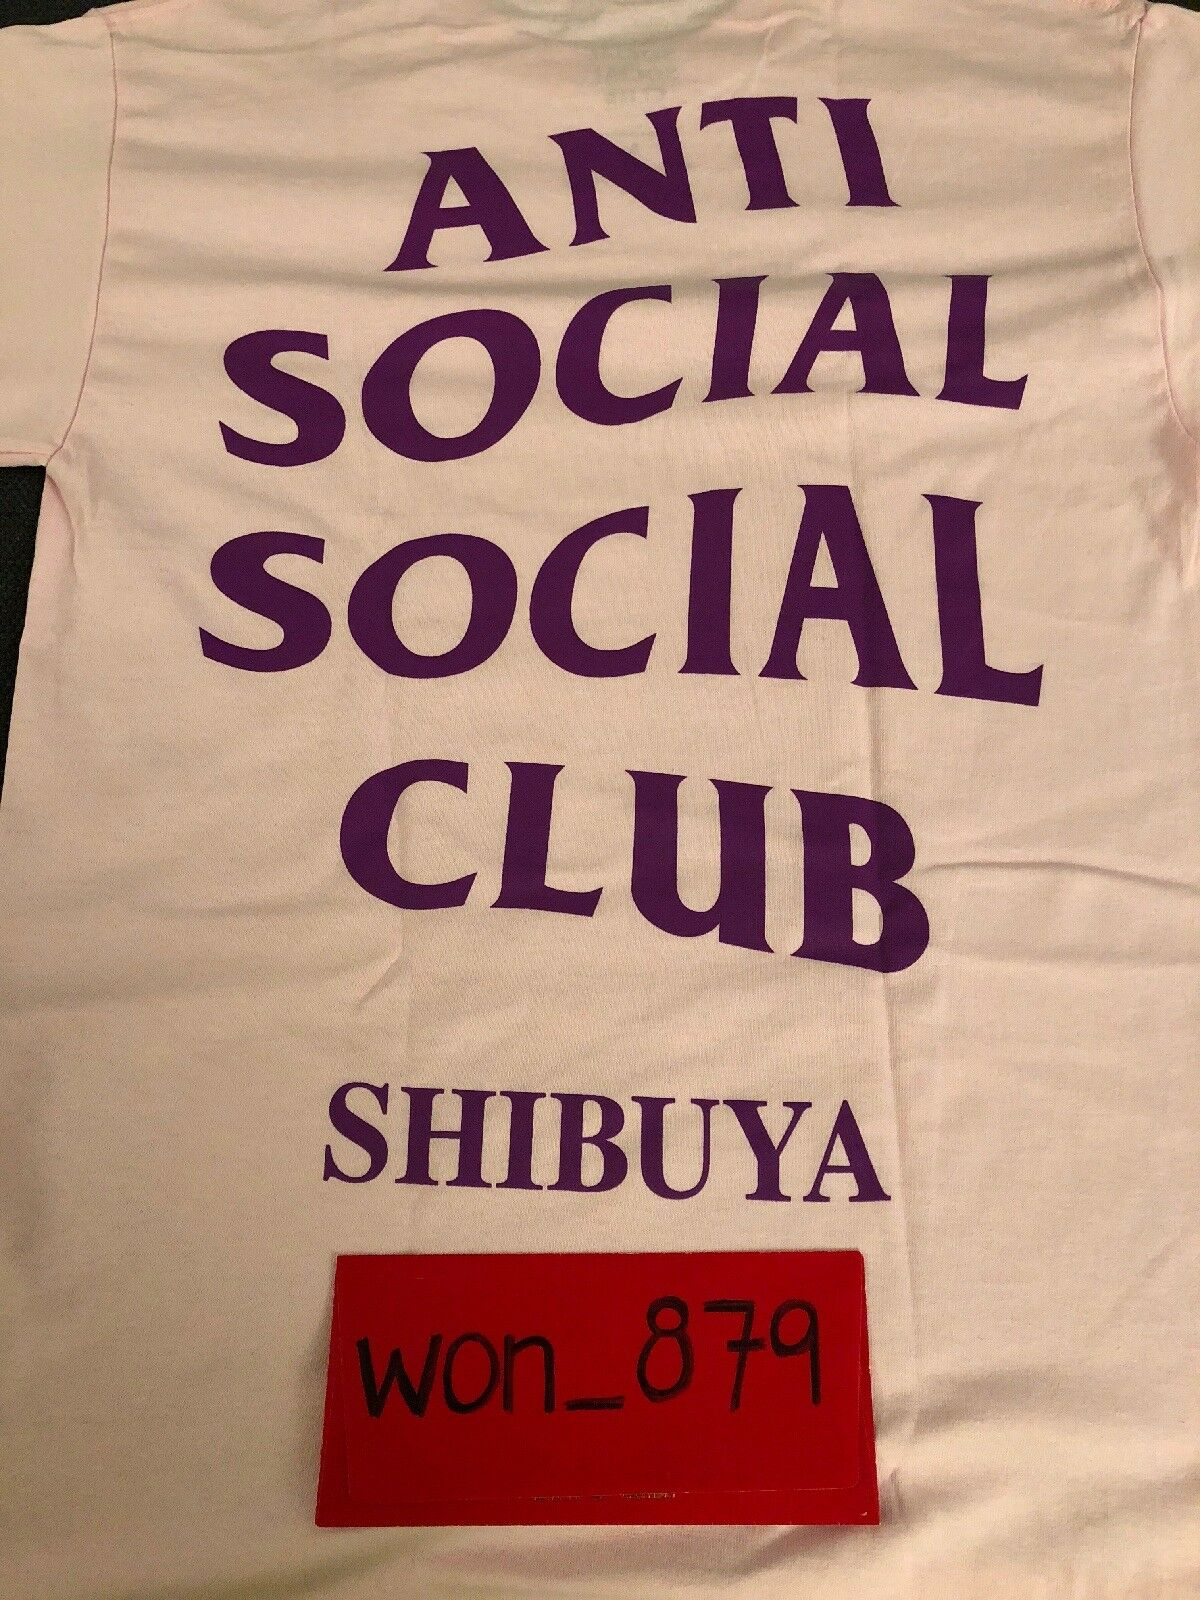 Anti Social Club social rose Shibuya Tee S SOLD OUT dans la main 100% Authentique